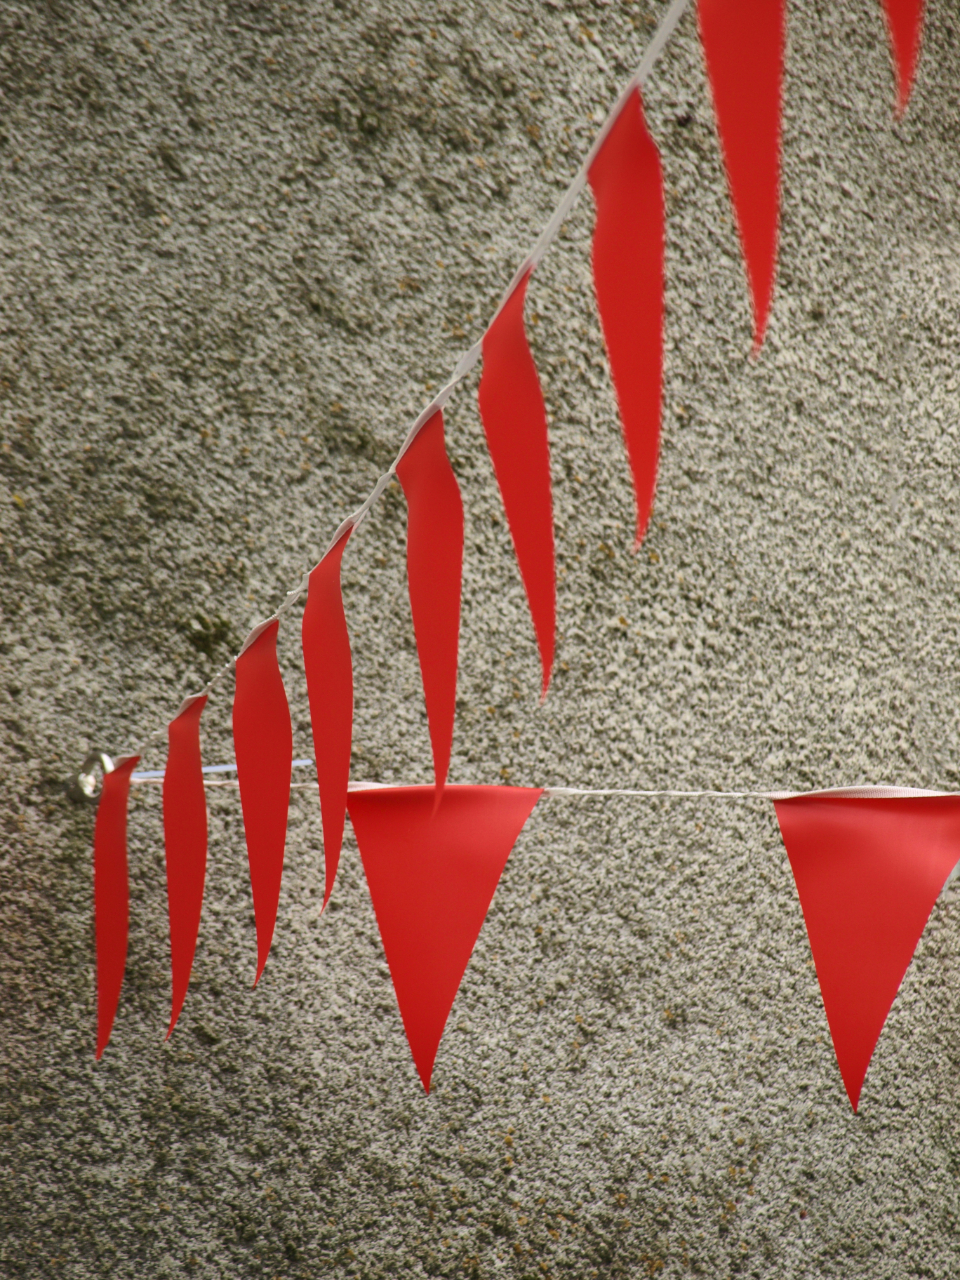 Free stock photo of flag bunting